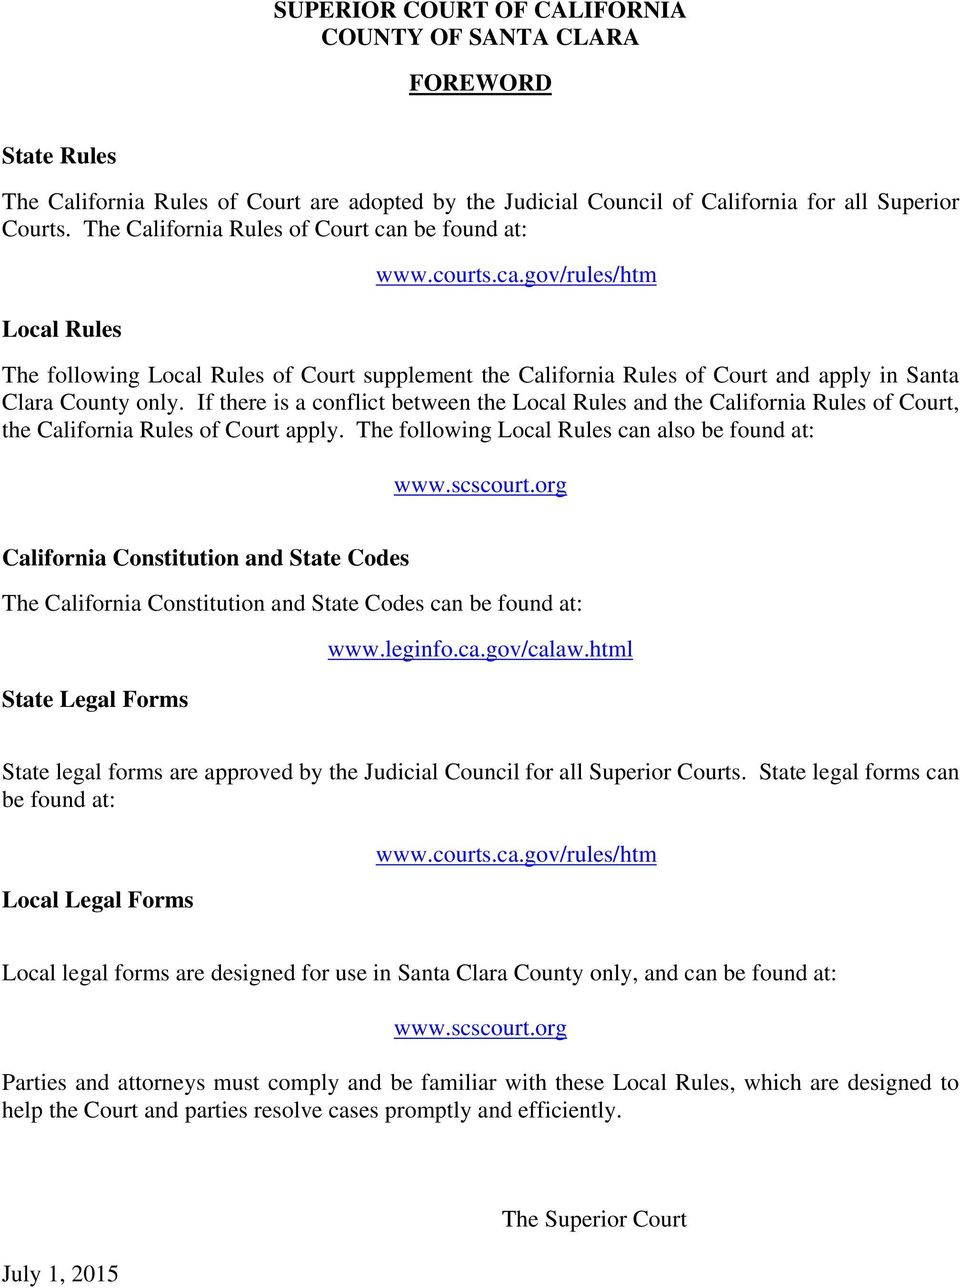 If there is a conflict between the Local Rules and the California Rules of Court, the California Rules of Court apply. The following Local Rules can also be found at: www.scscourt.